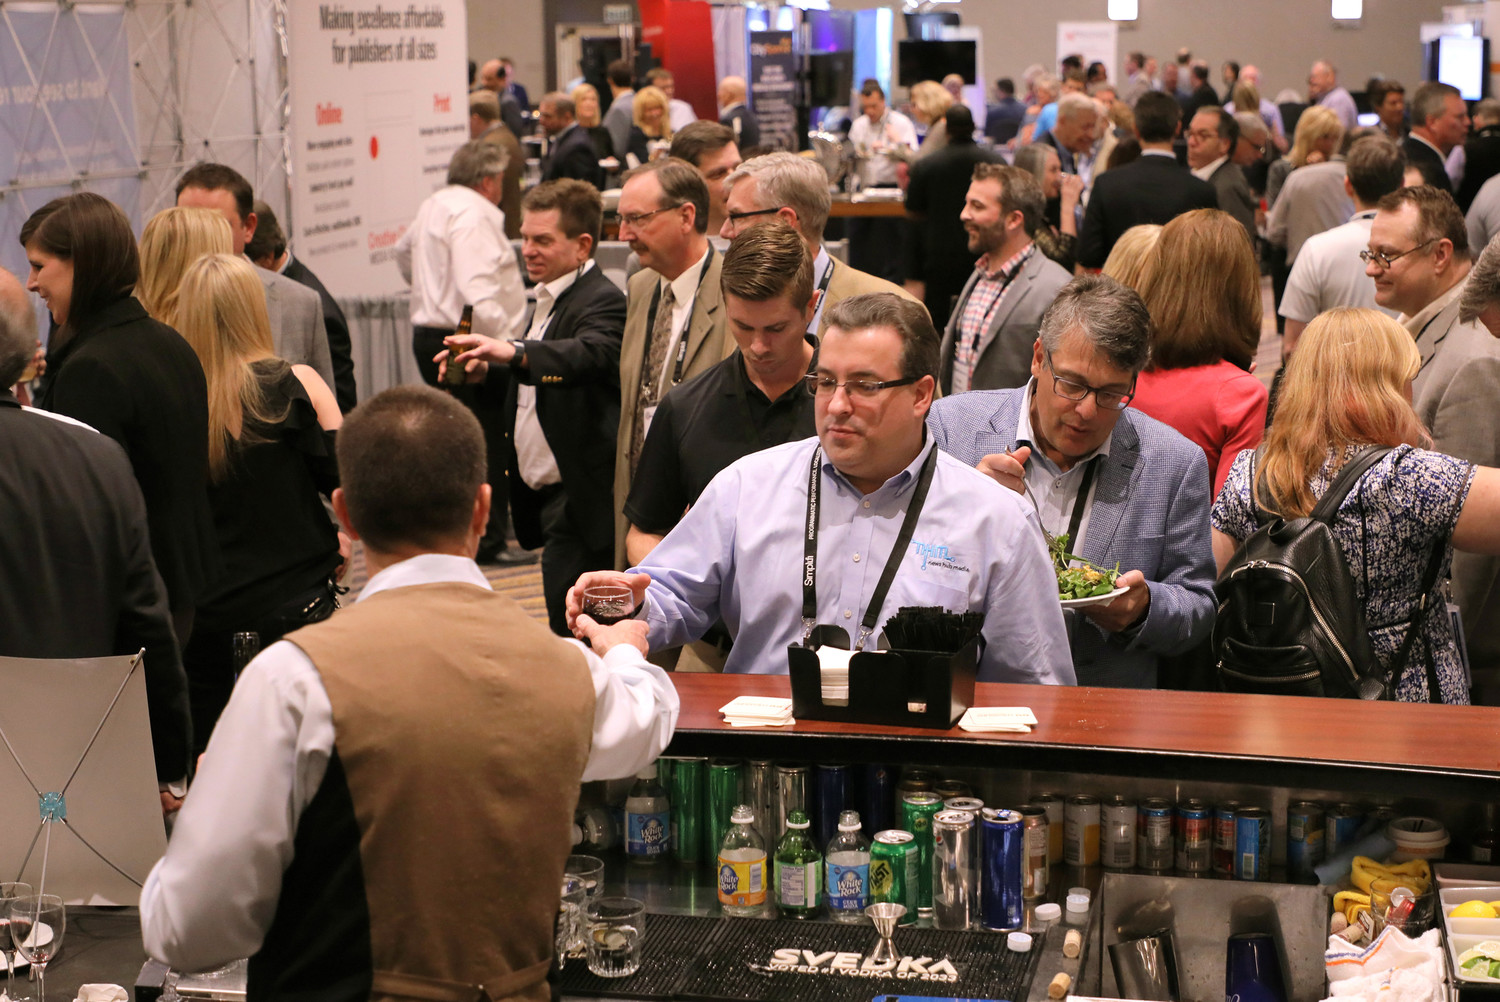 Monday evening Welcome Reception offered time to network with our sponsors and exhibitors